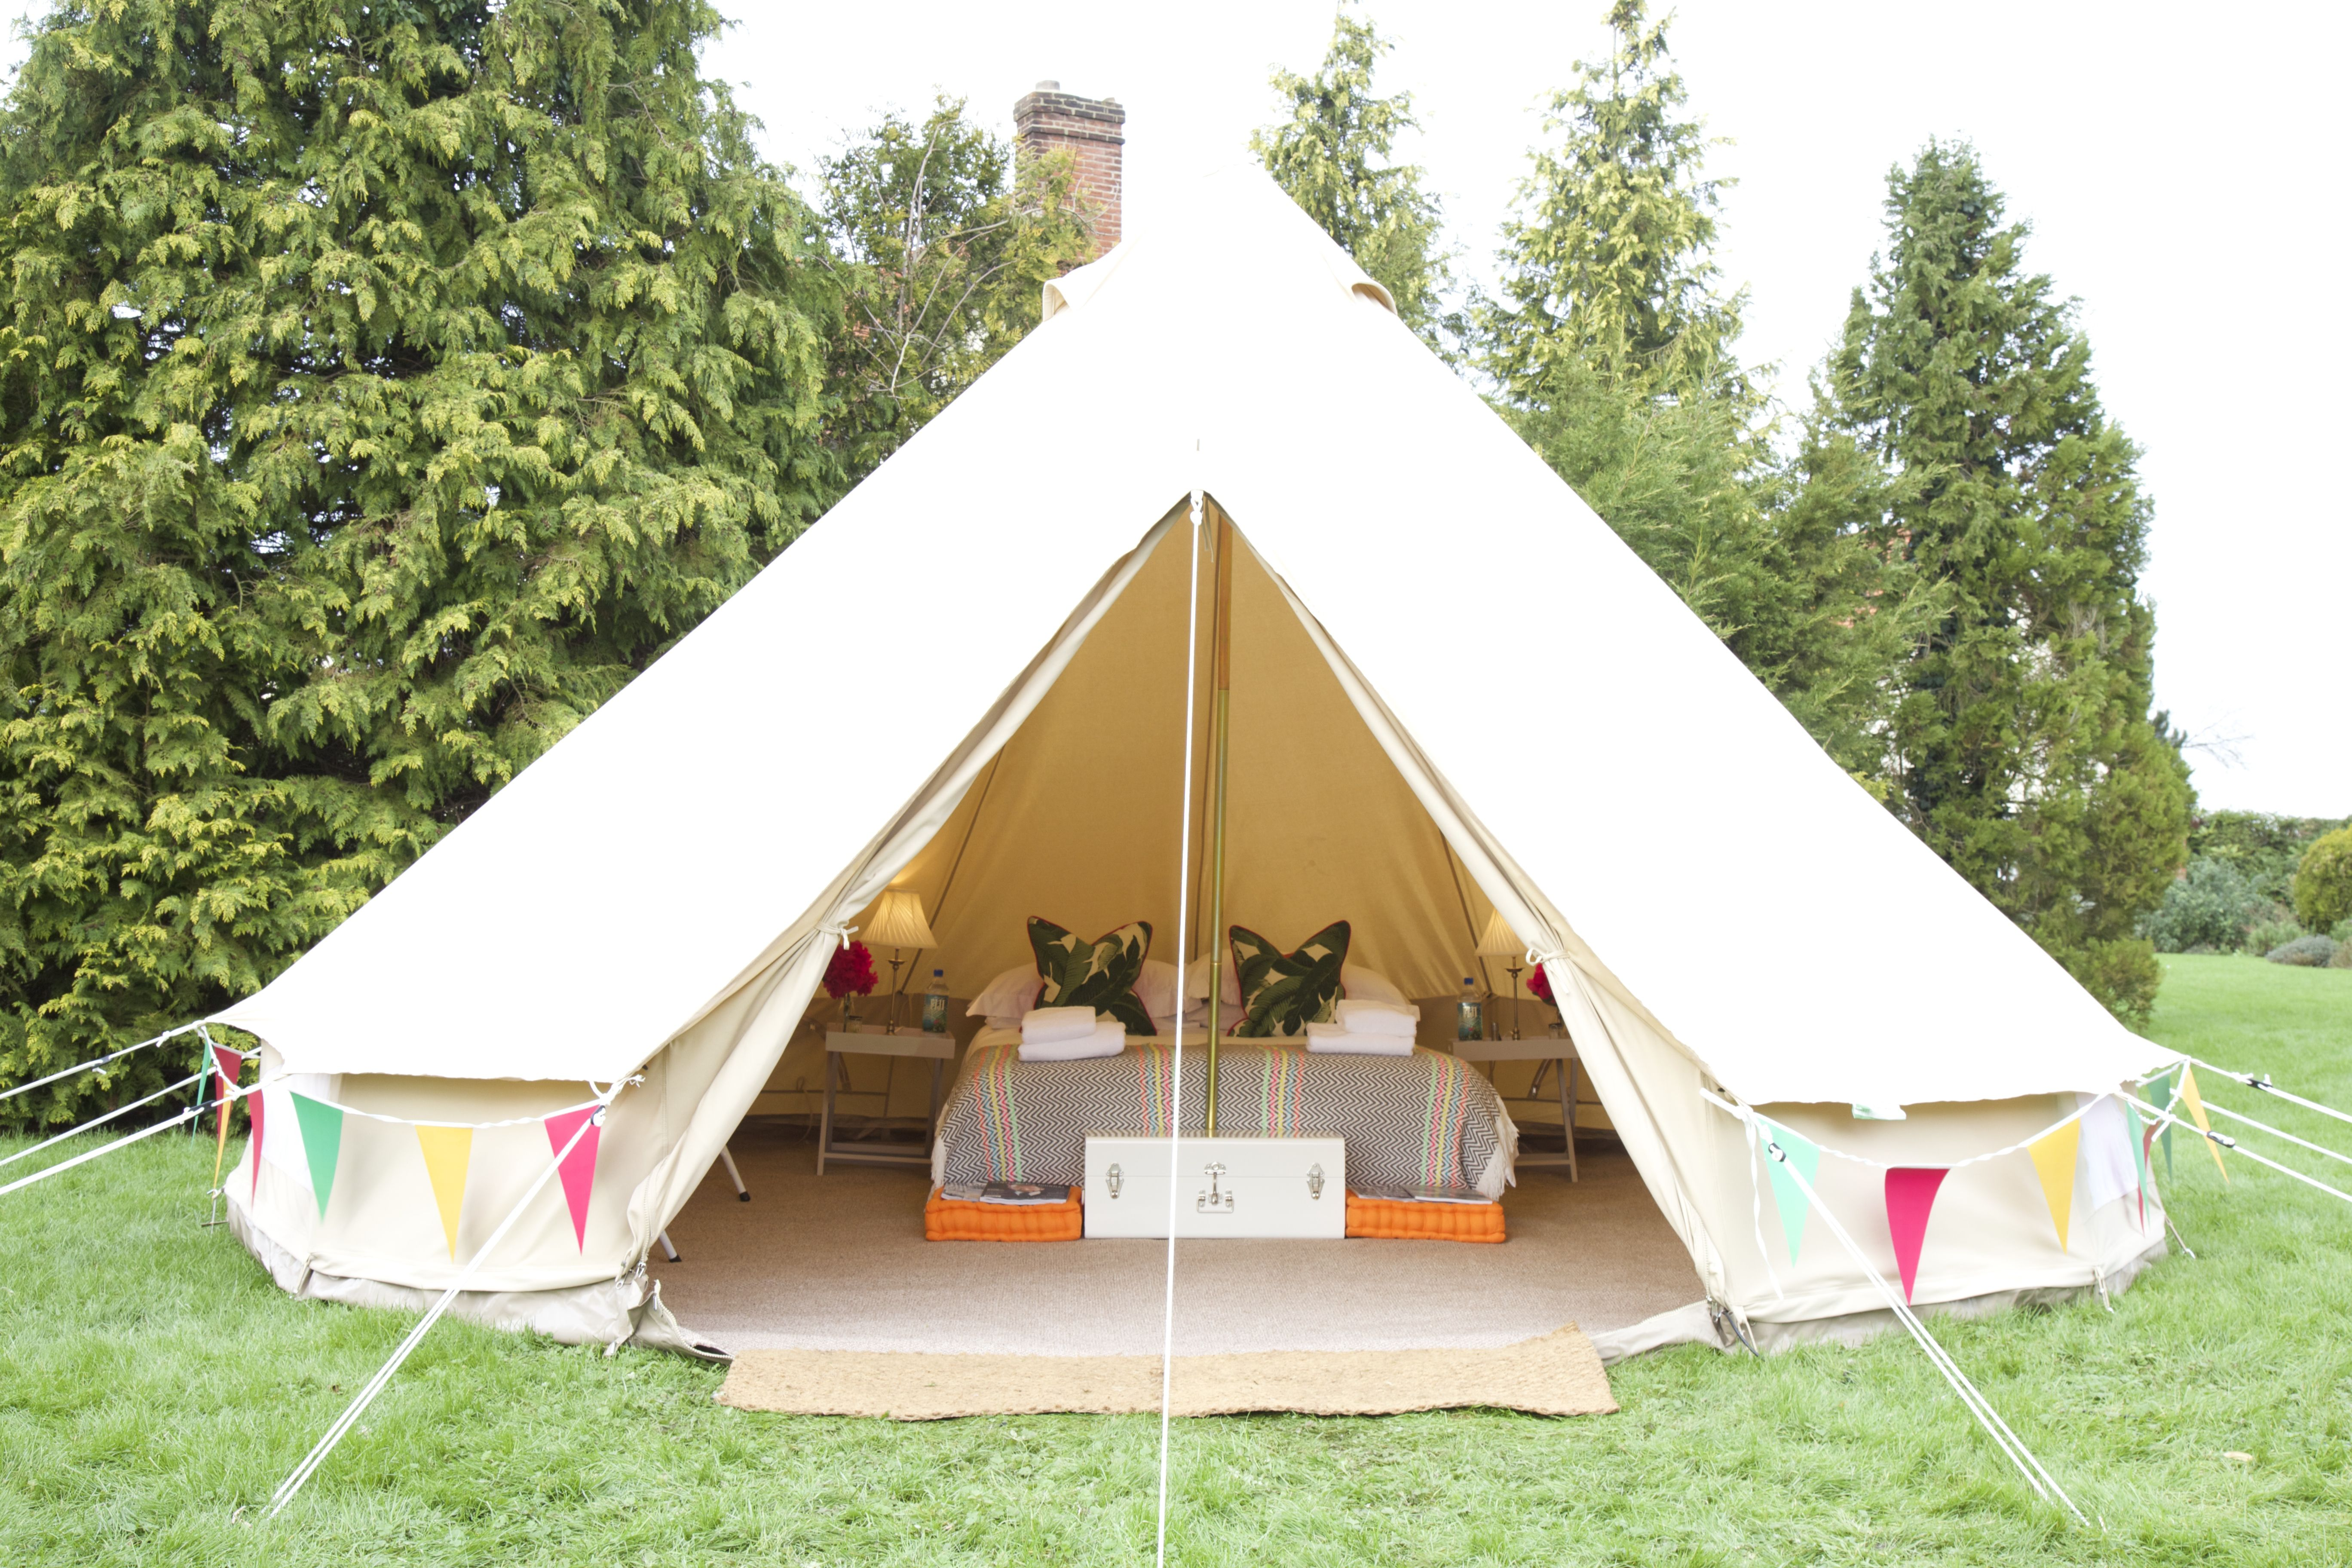 Portobello Tents is a UK-based tent hire company. We supply luxury canvas tents for weddings festivals and events for the ultimate gl&ing experience. & Gold luxury 5 meter Bell Tent complete with memory foam mattress ...